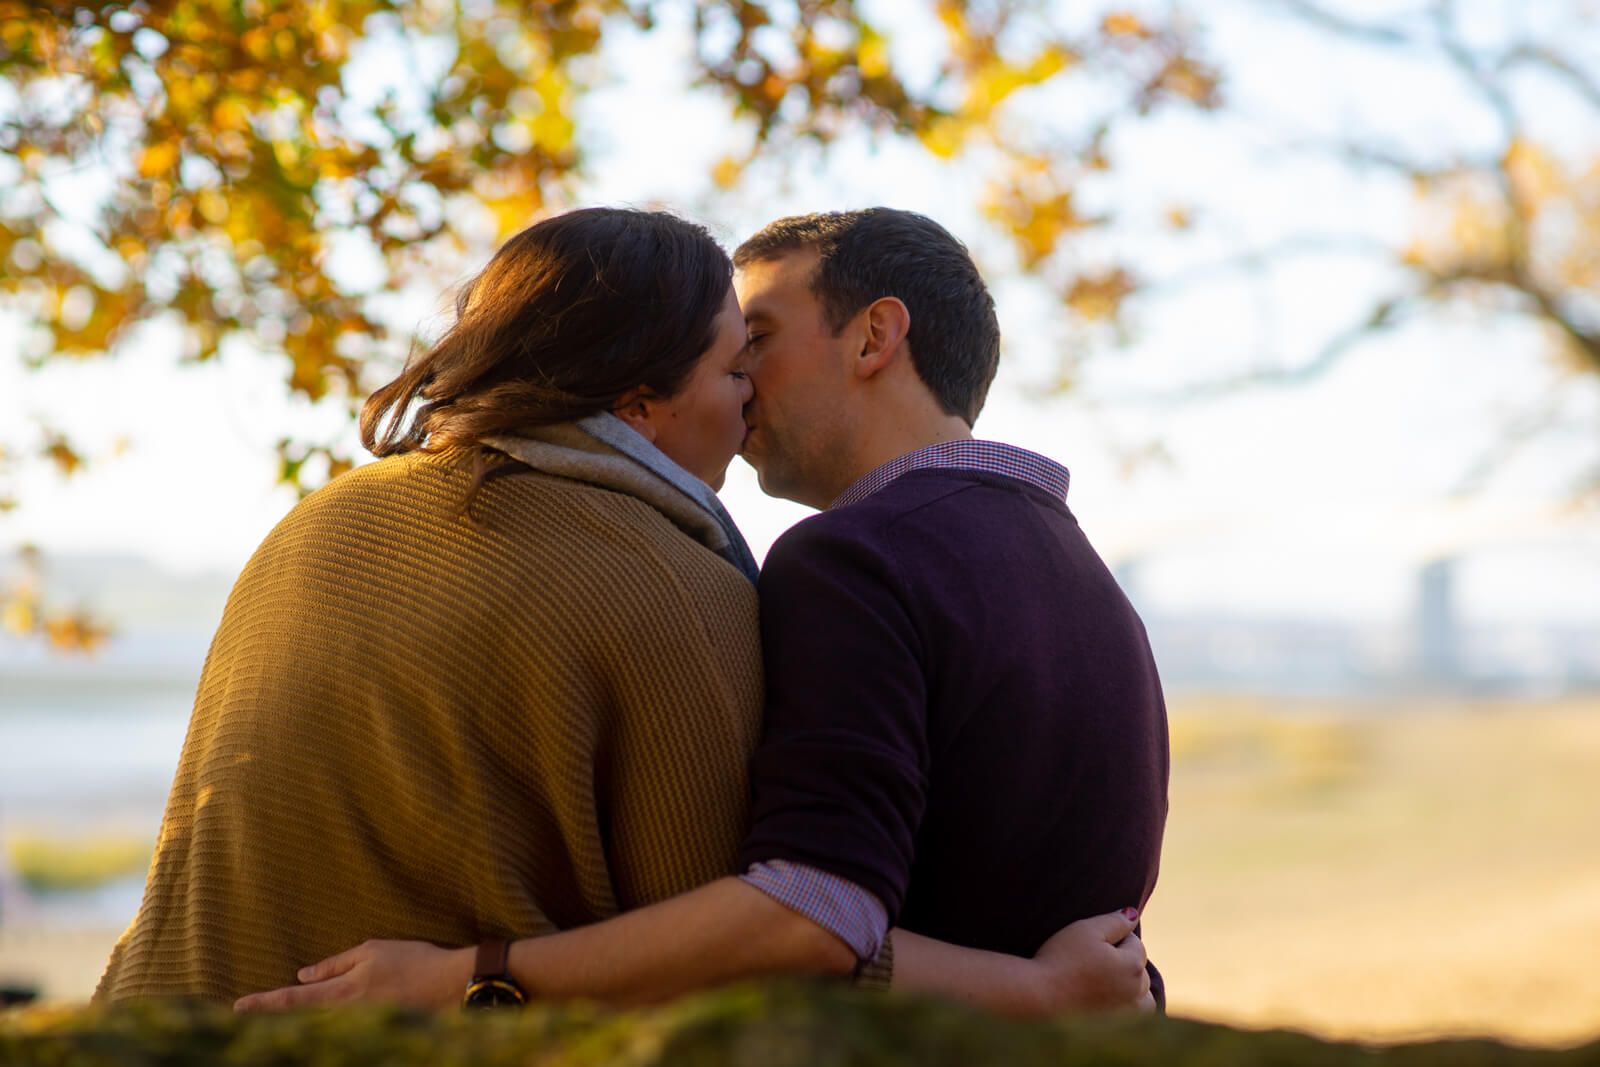 Photo of a young couple kissing taken from behind with a beach in the background.